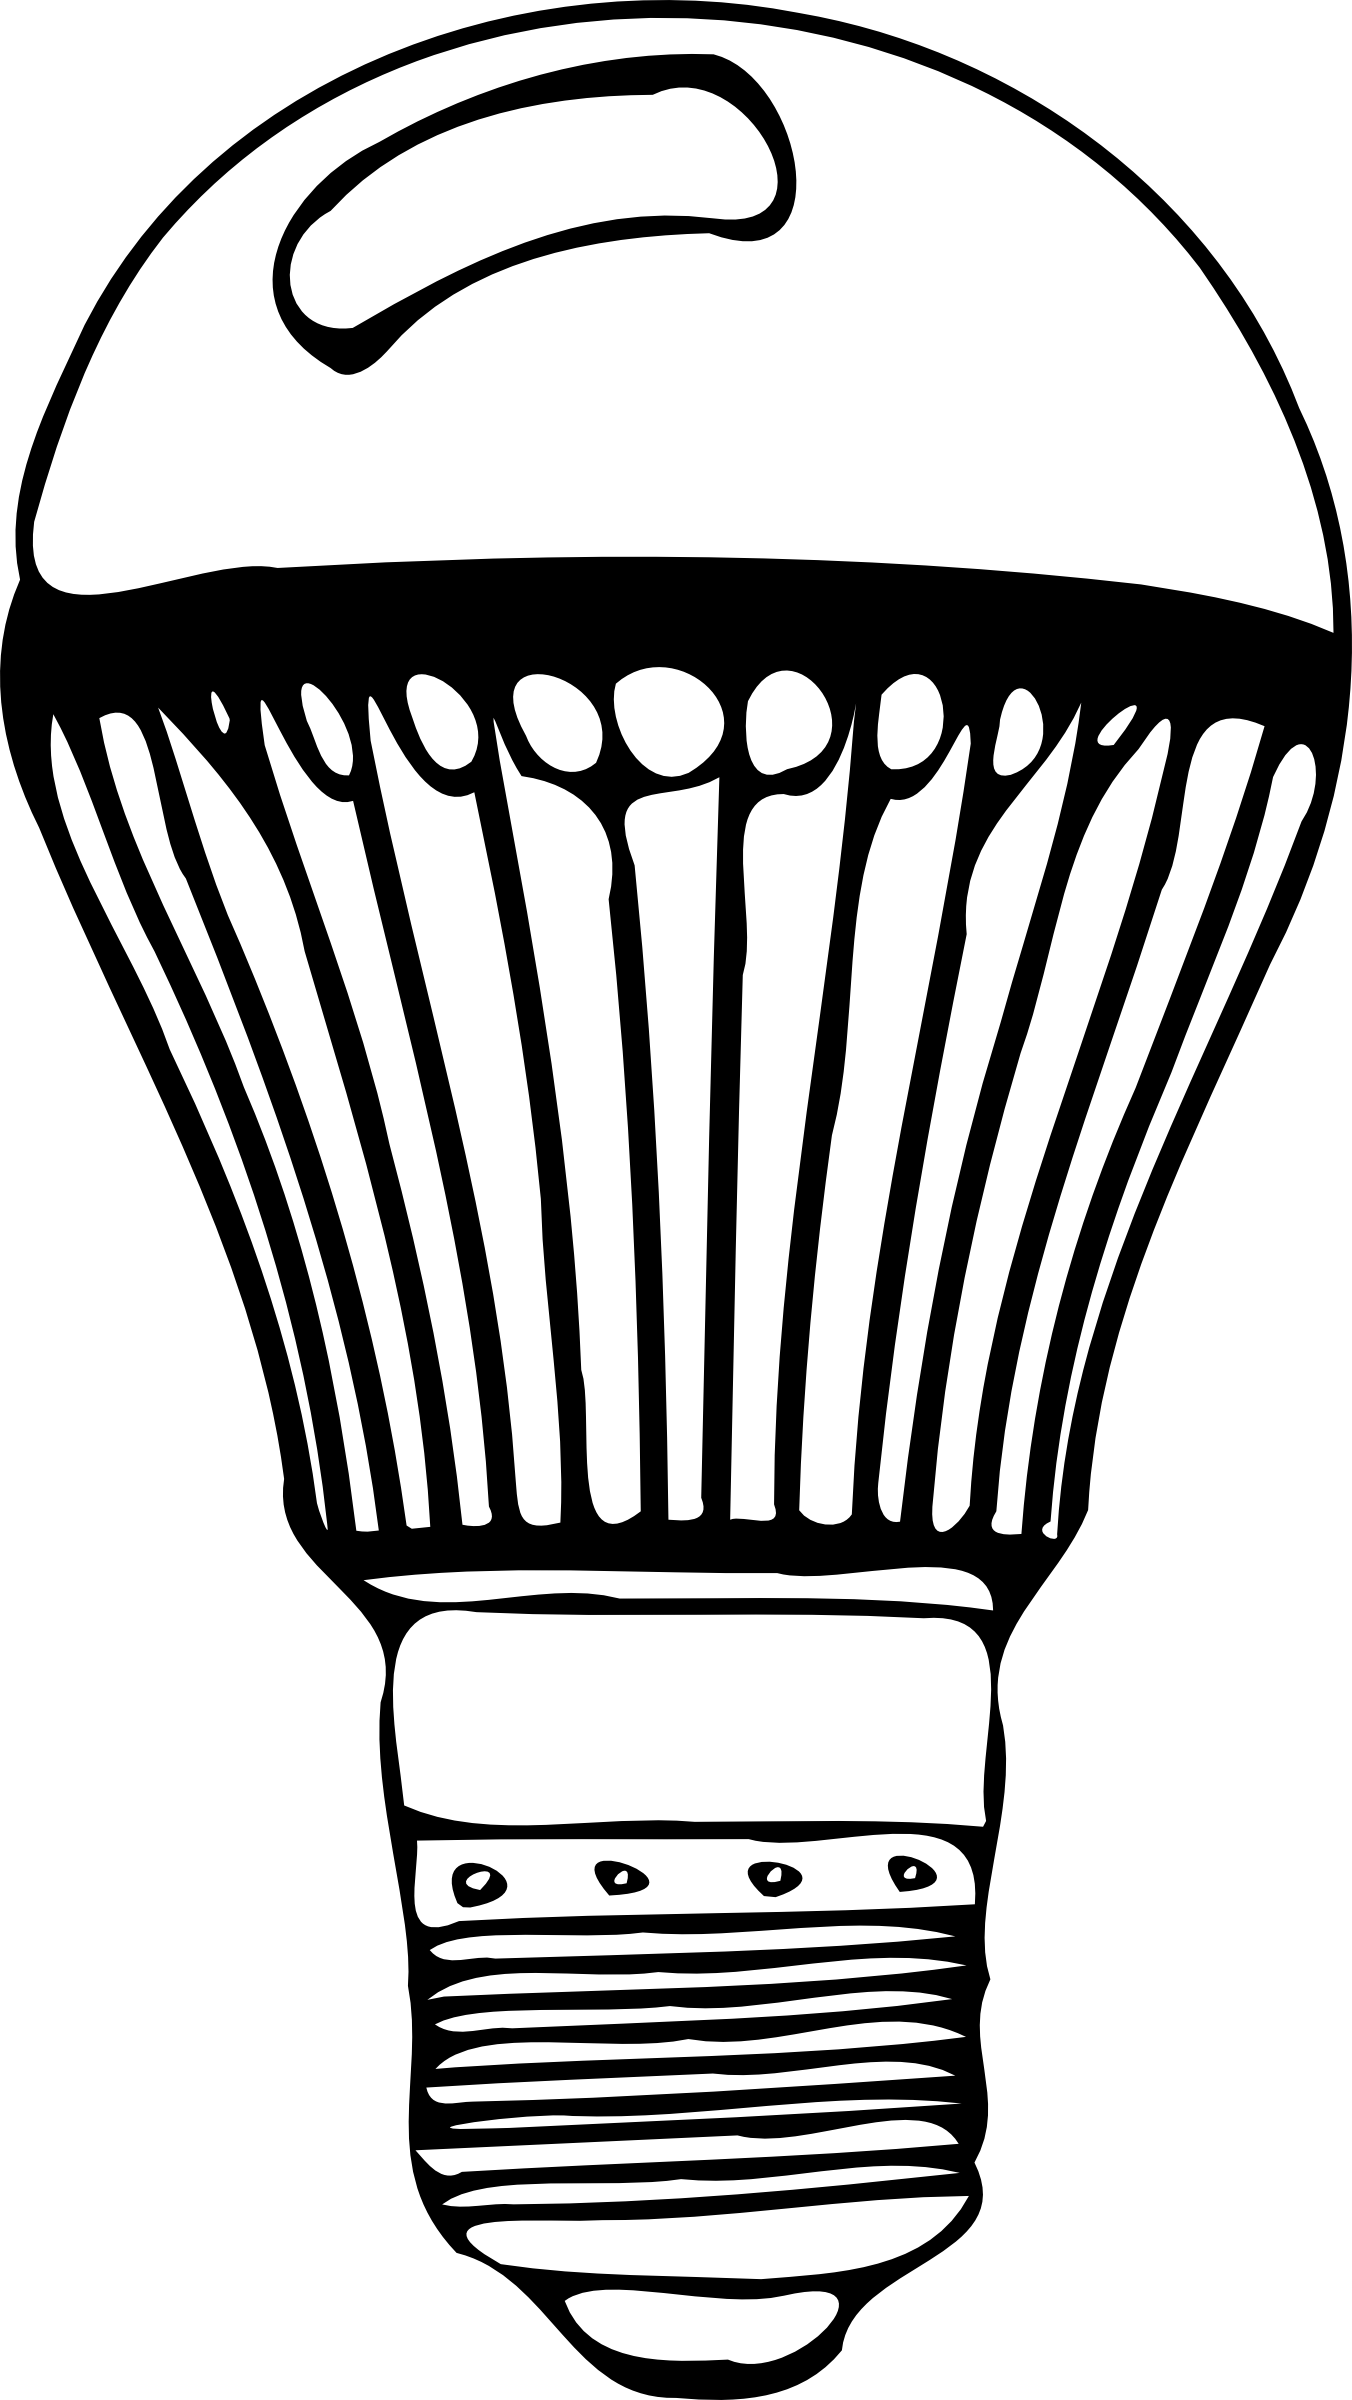 Led lightbulb clipart explore. Light bulb clip art modern